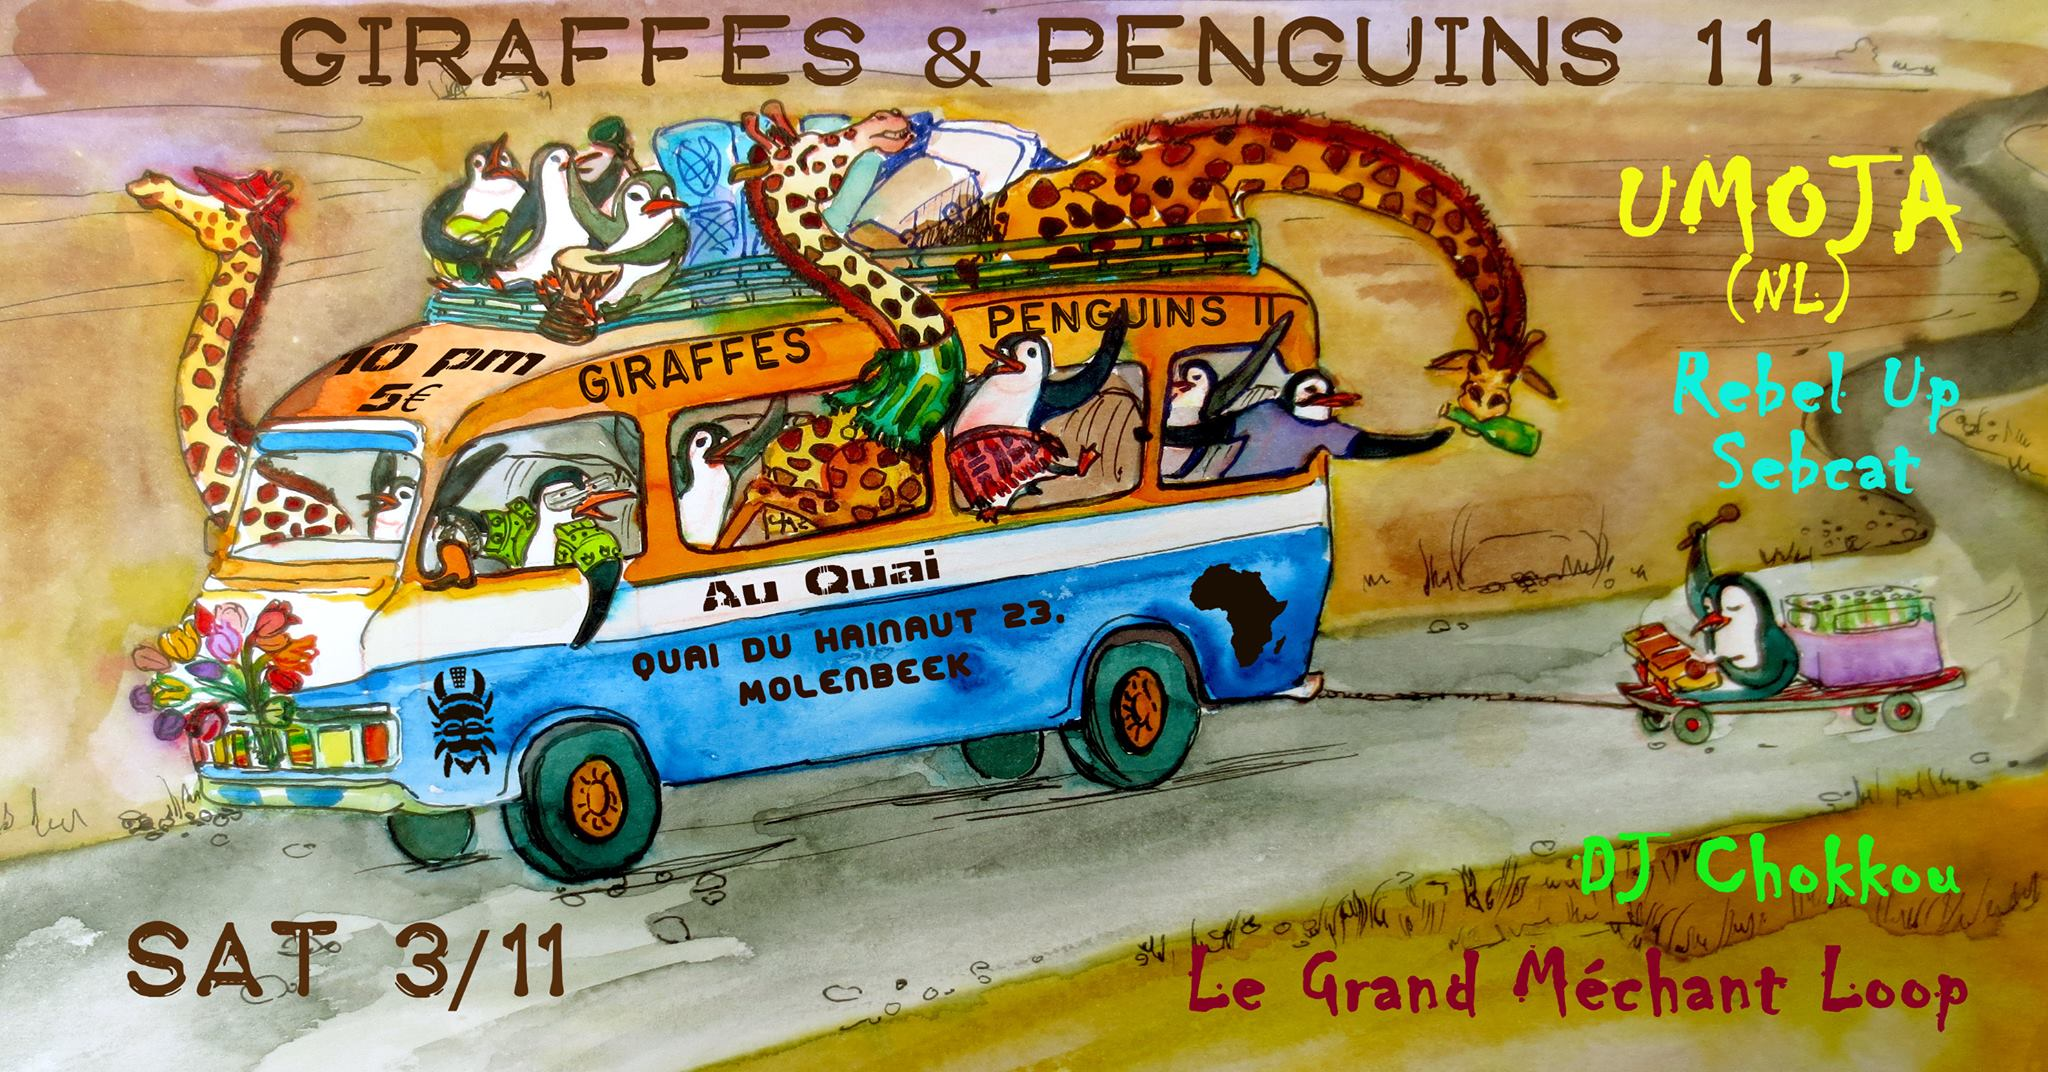 16. Giraffes & Penguins #11 feat